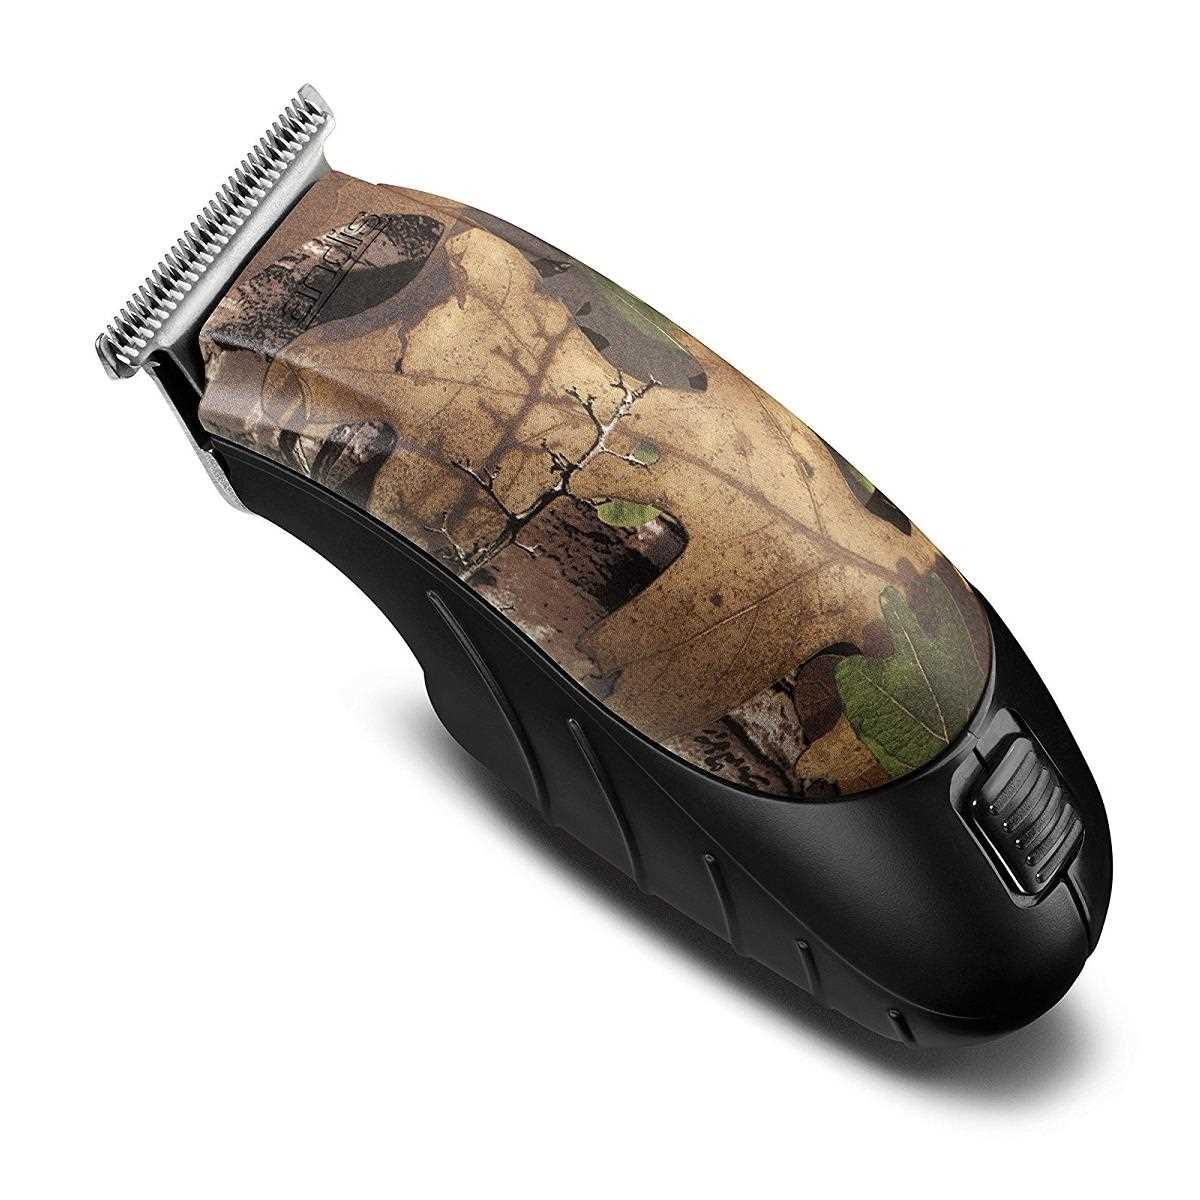 Andis Camo Trim N Go Personal Trimmer